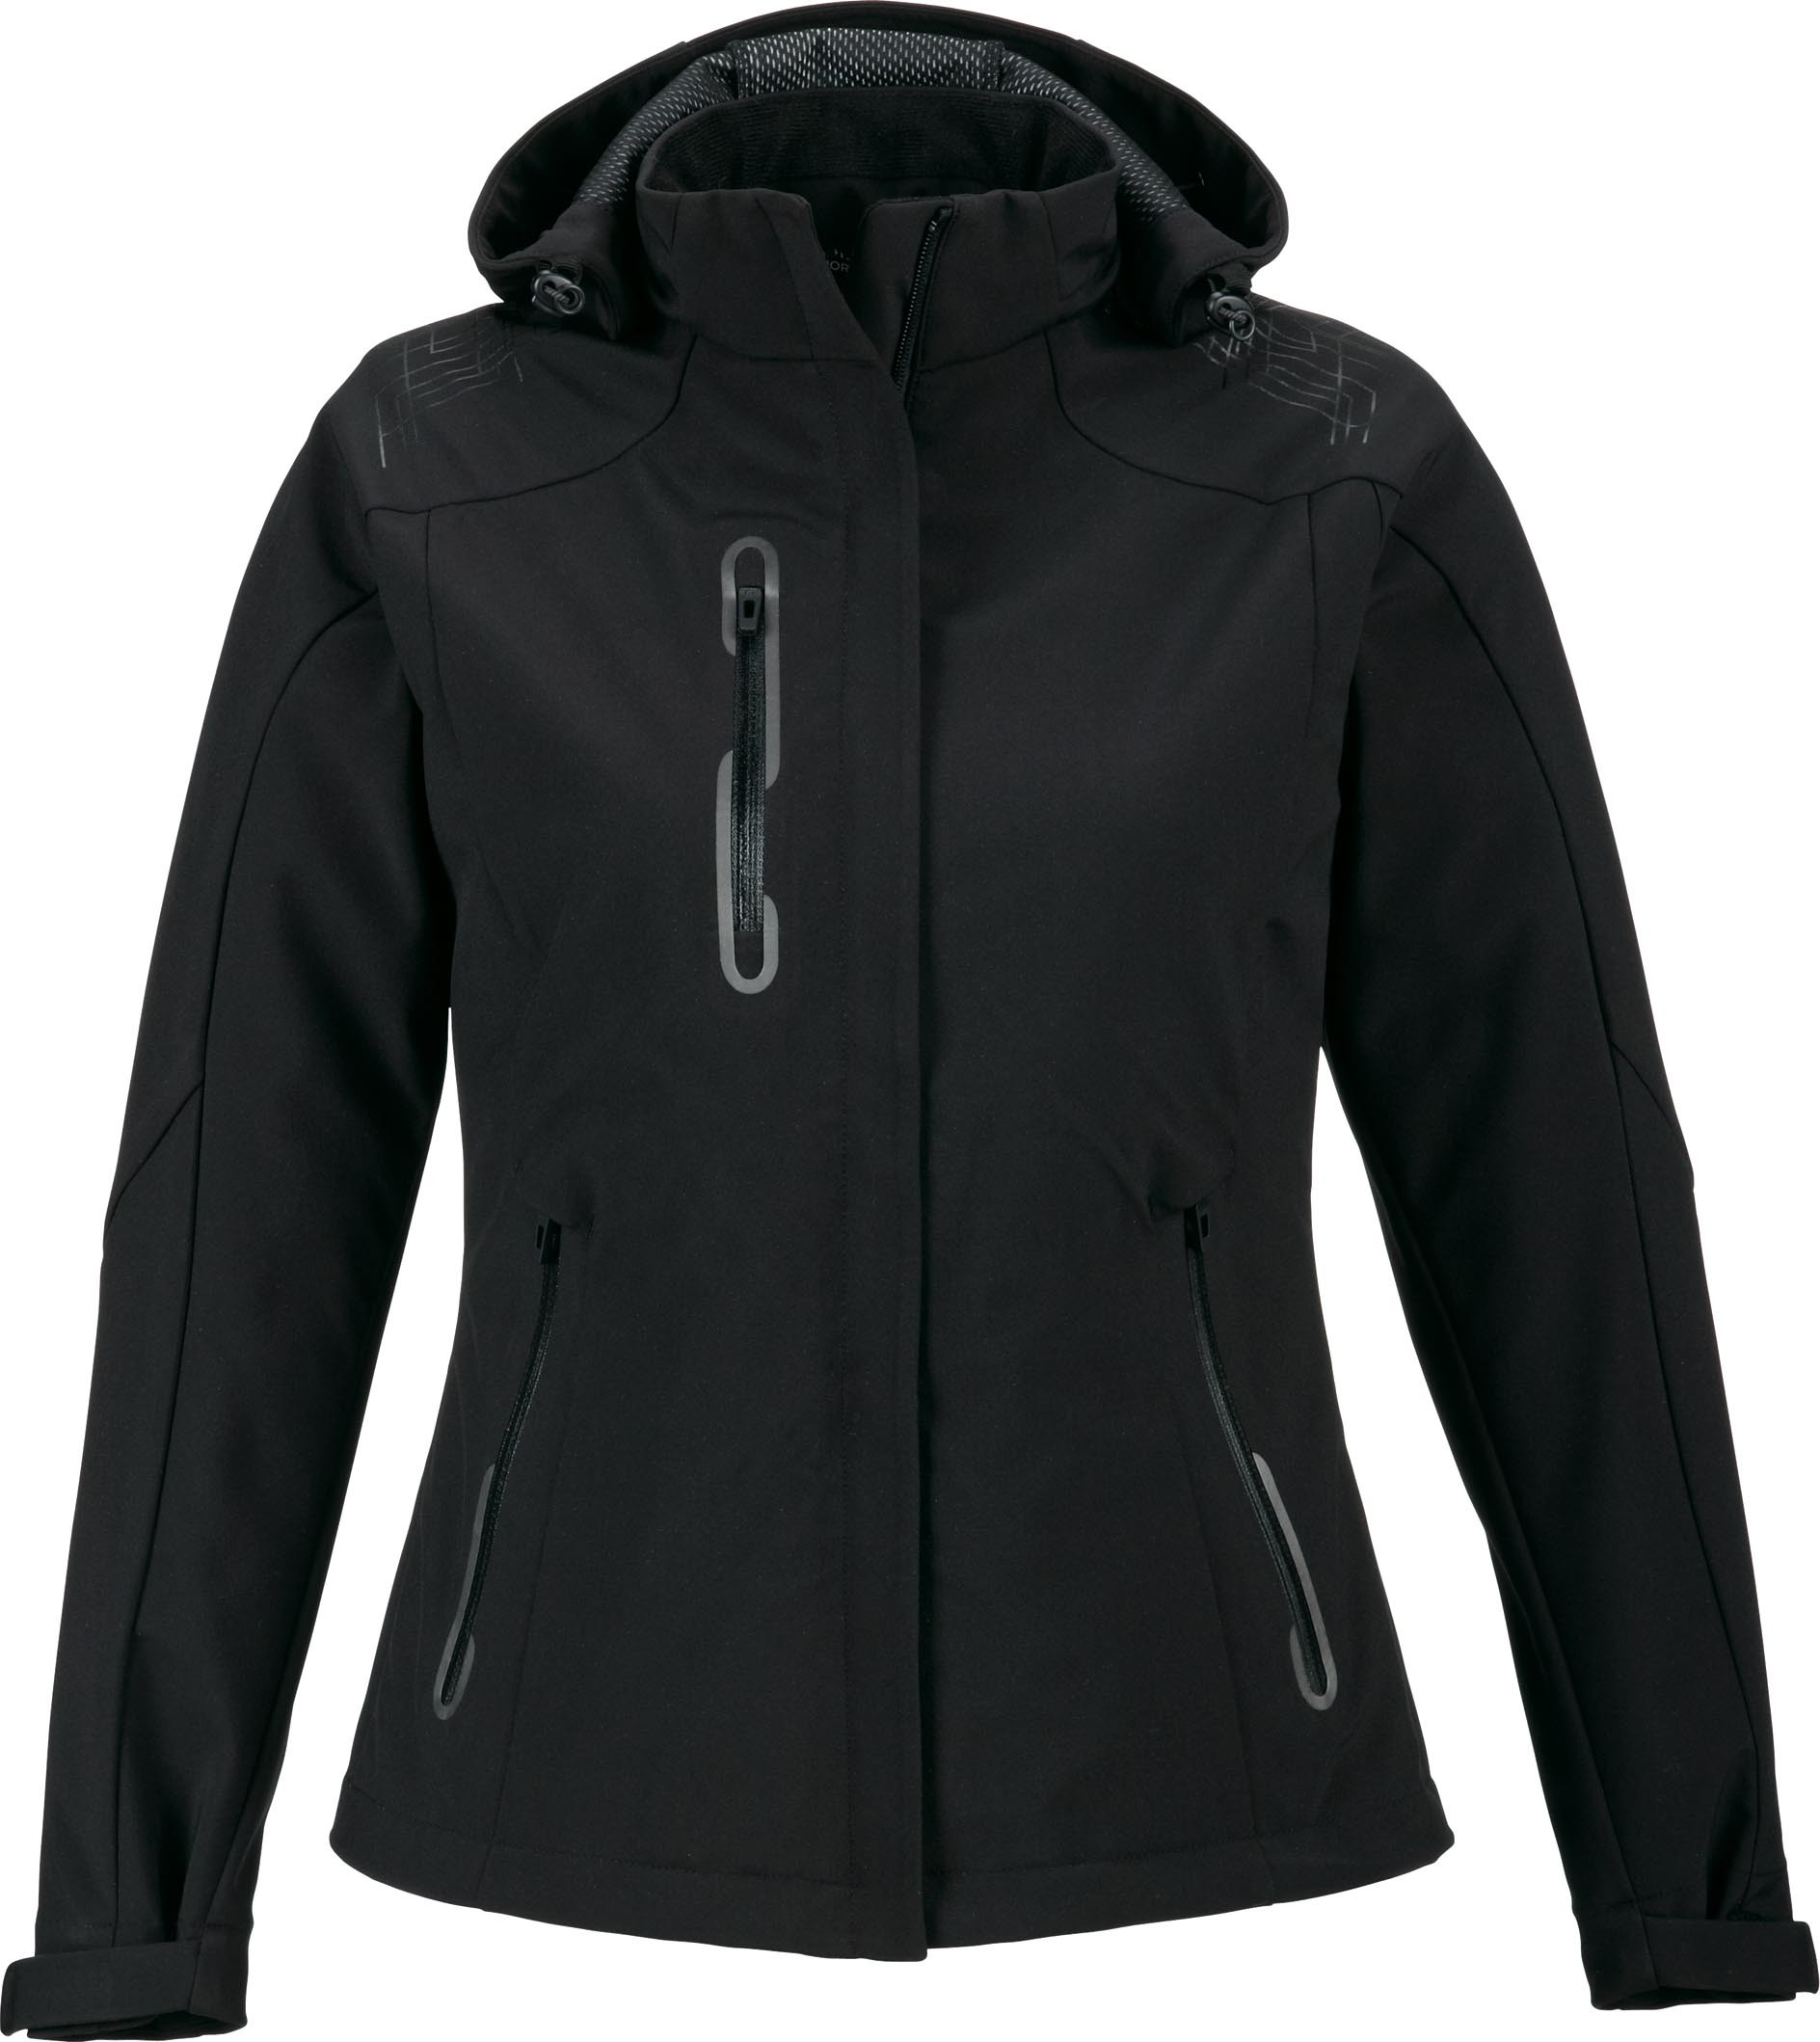 Ash City Light Bonded Jackets 78665 - Axis Ladies' Soft ...